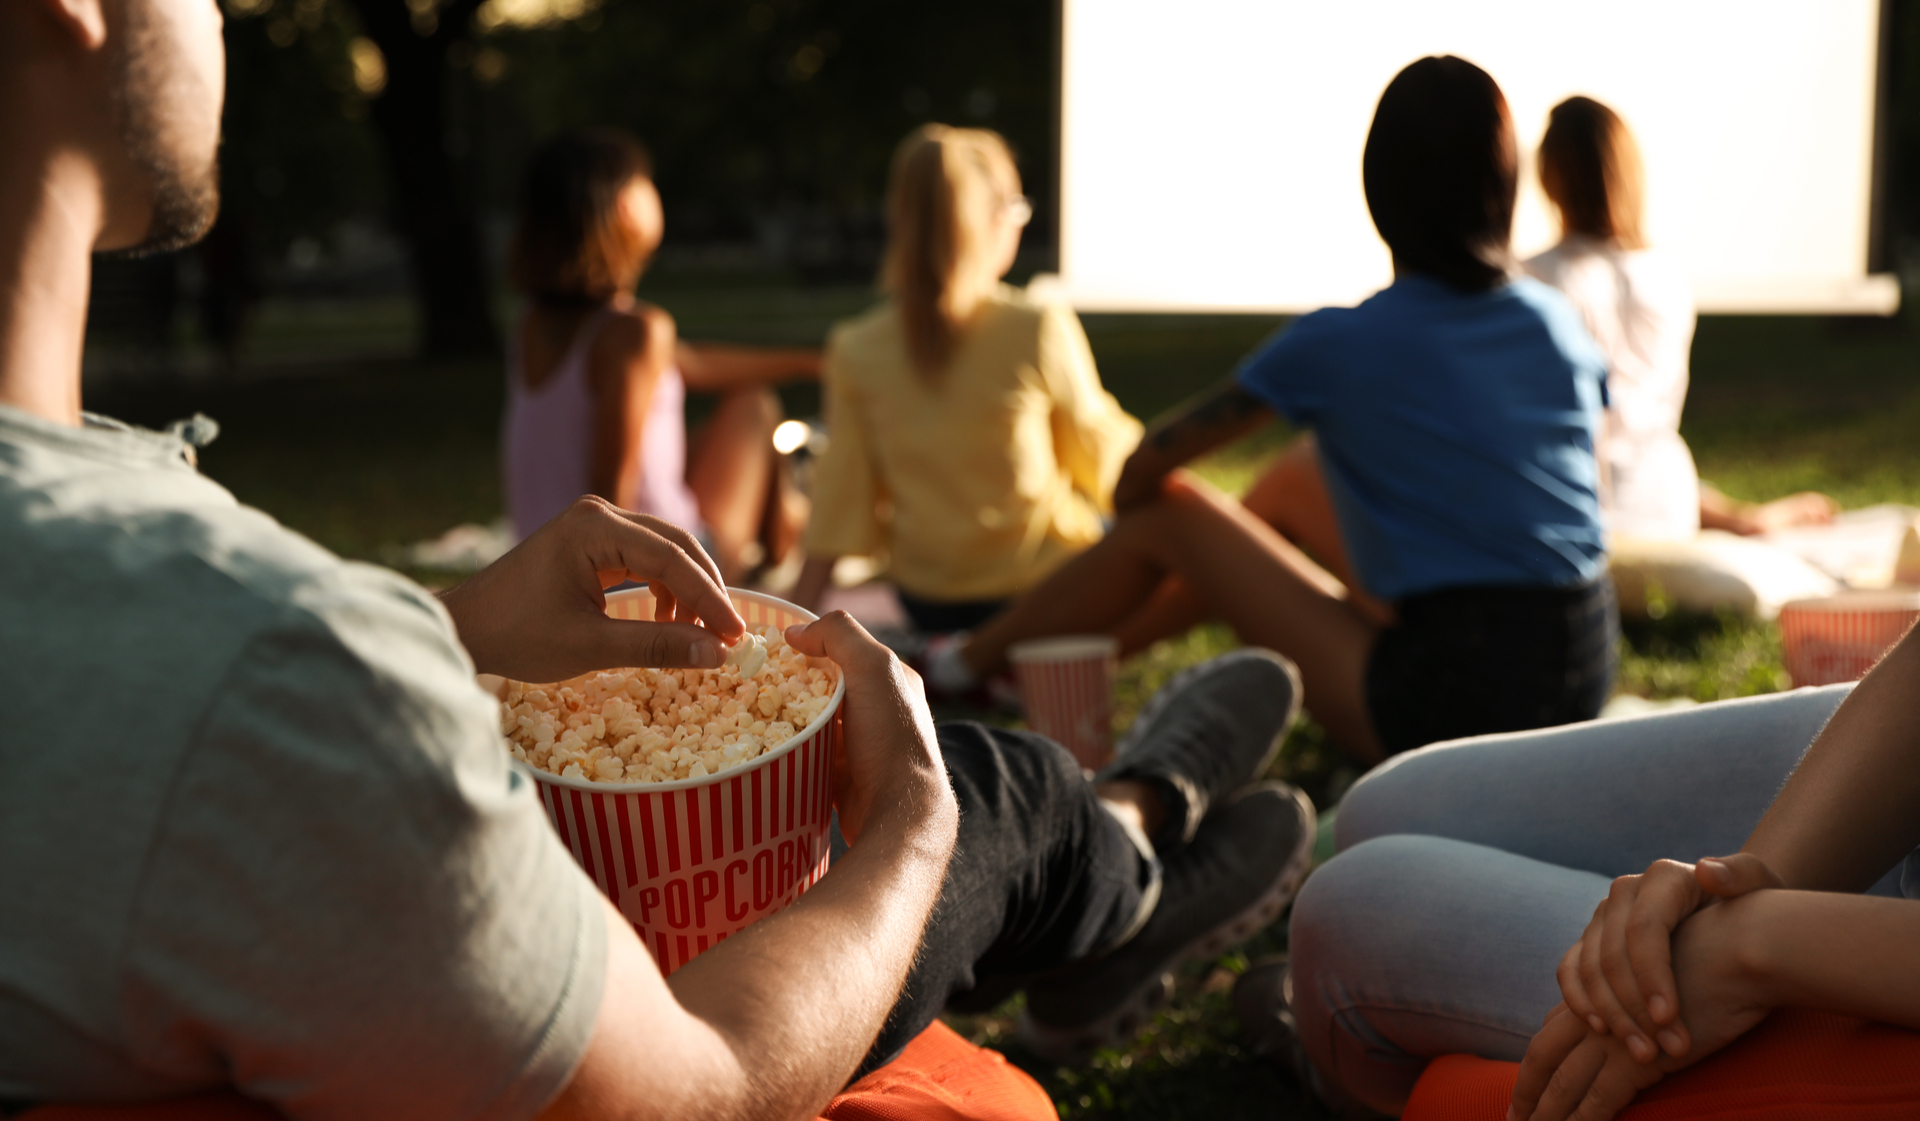 21 Fitzsimons | Aurora, CO | outdoor movie screening with popcorn